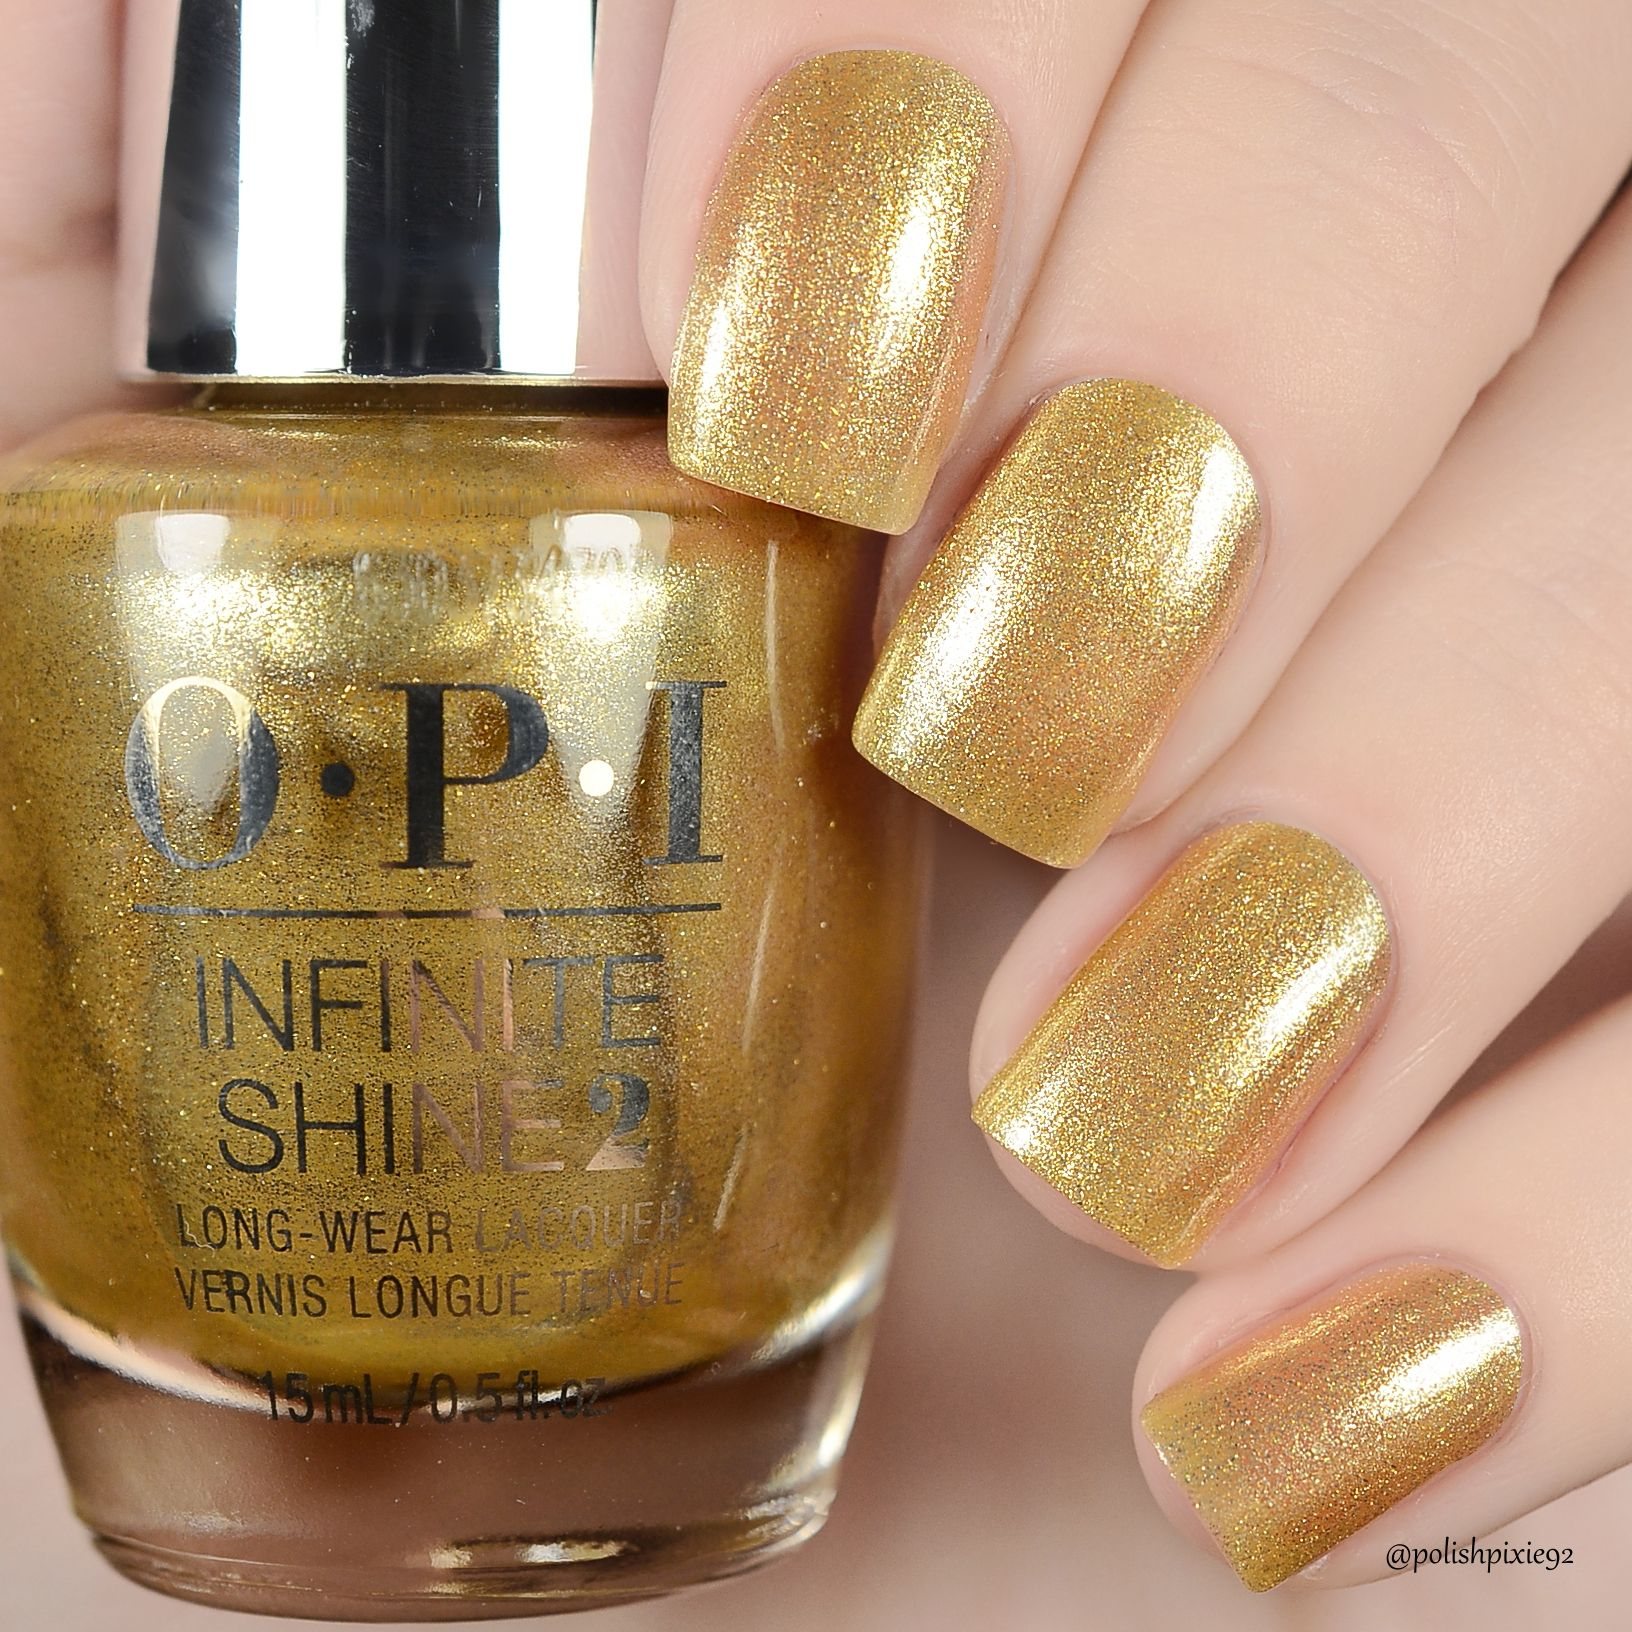 Opi The Nutcracker And The Four Realms Dazzling Dew Drop By O P I The Nutcracker And The Four Realms Collection Winter 2018 Nails Opinutcracker Swat Nail Polish Golden Nails Colorful Nail Designs